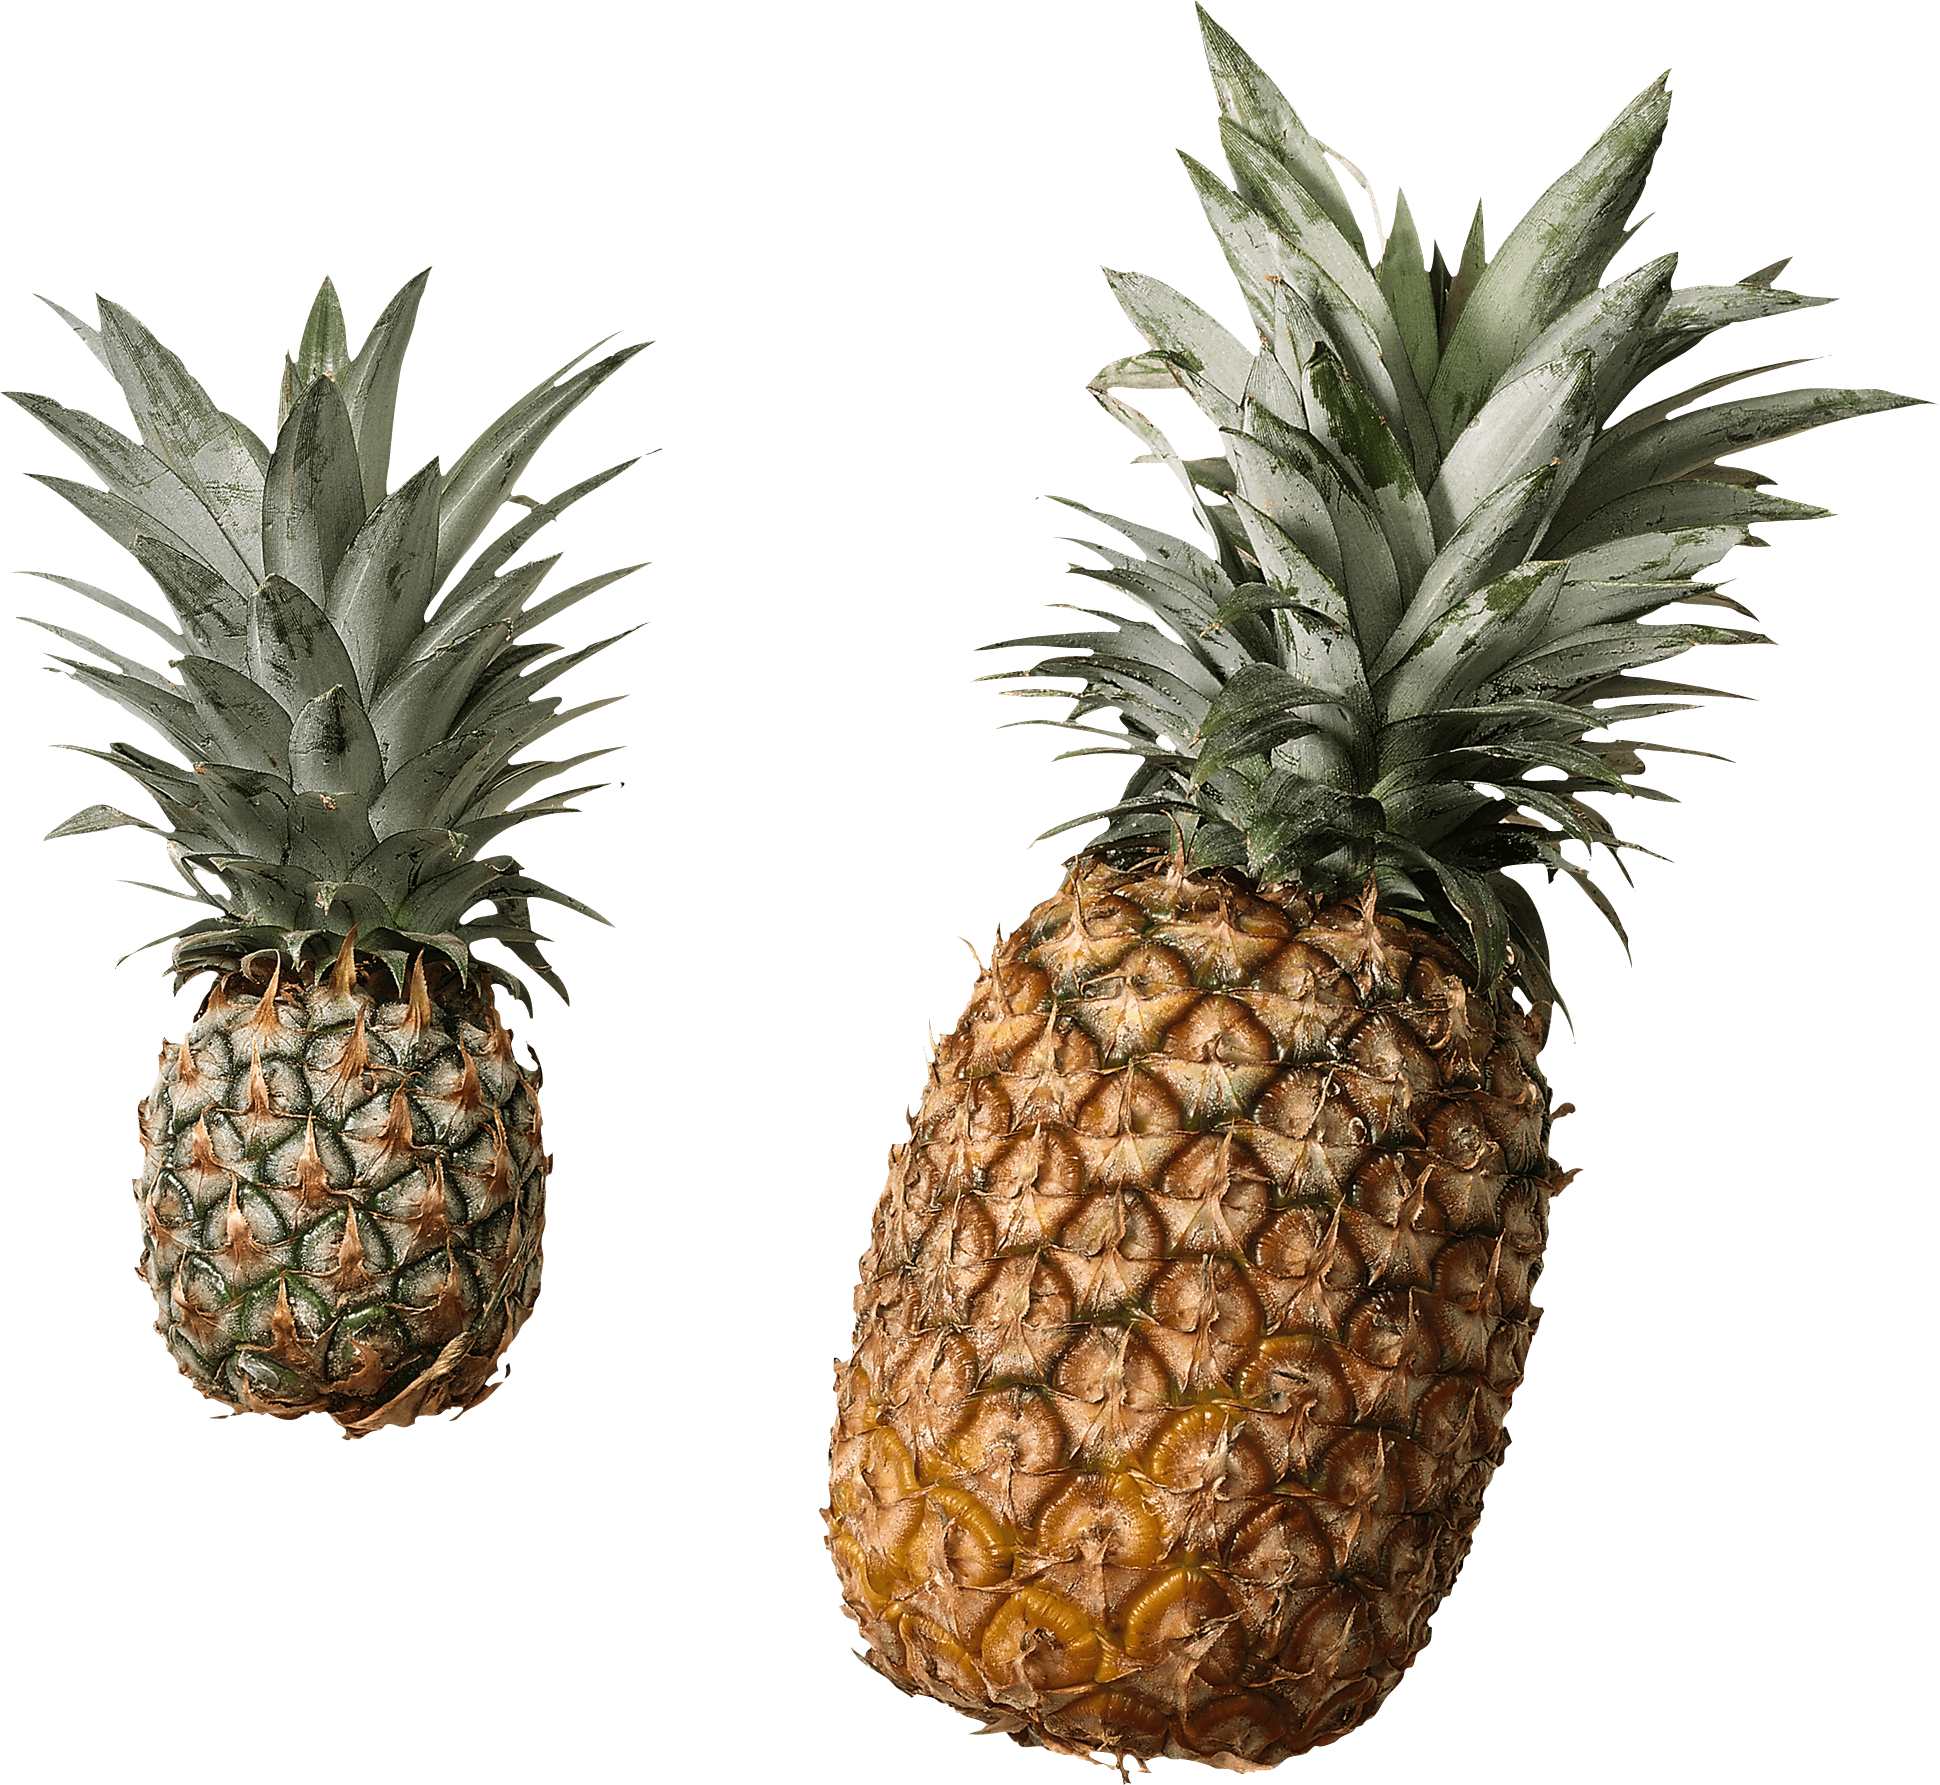 Clipart pineapple high quality. Duo transparent png stickpng